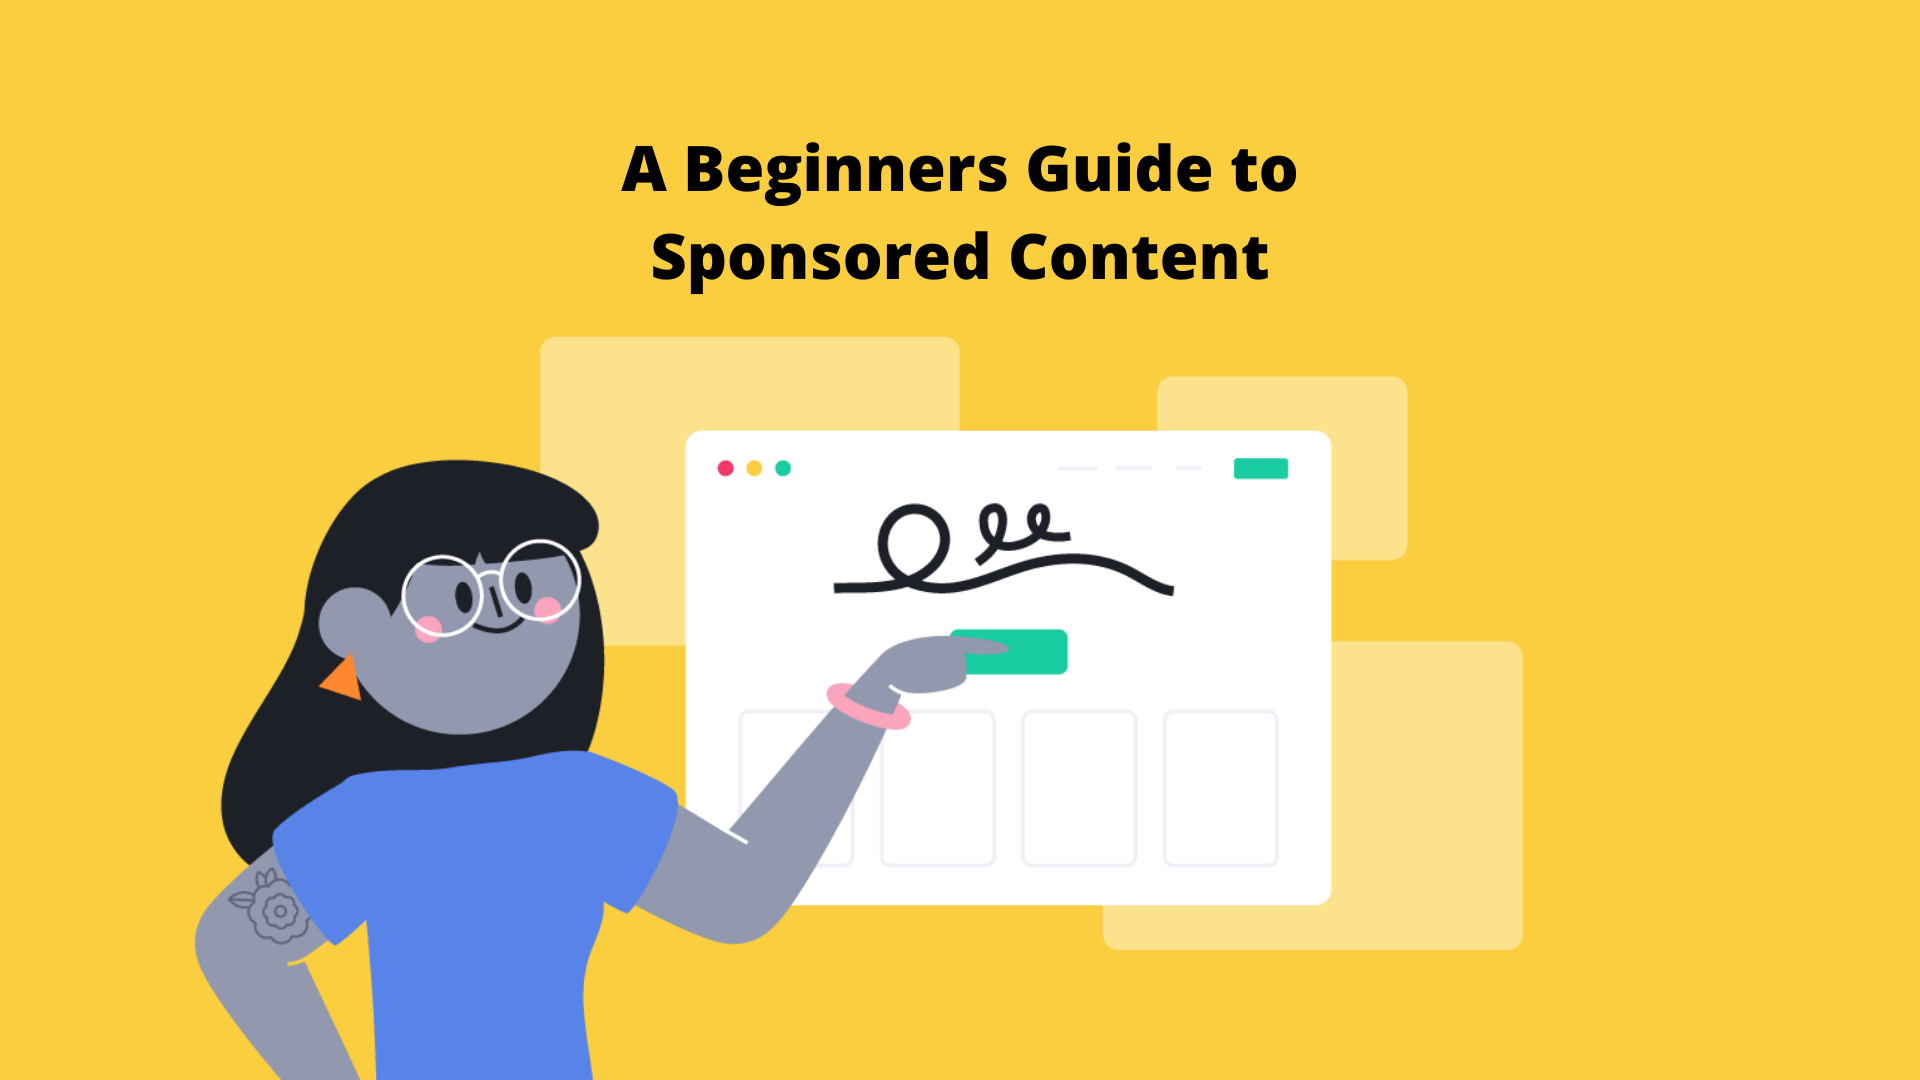 What is Sponsored Content?